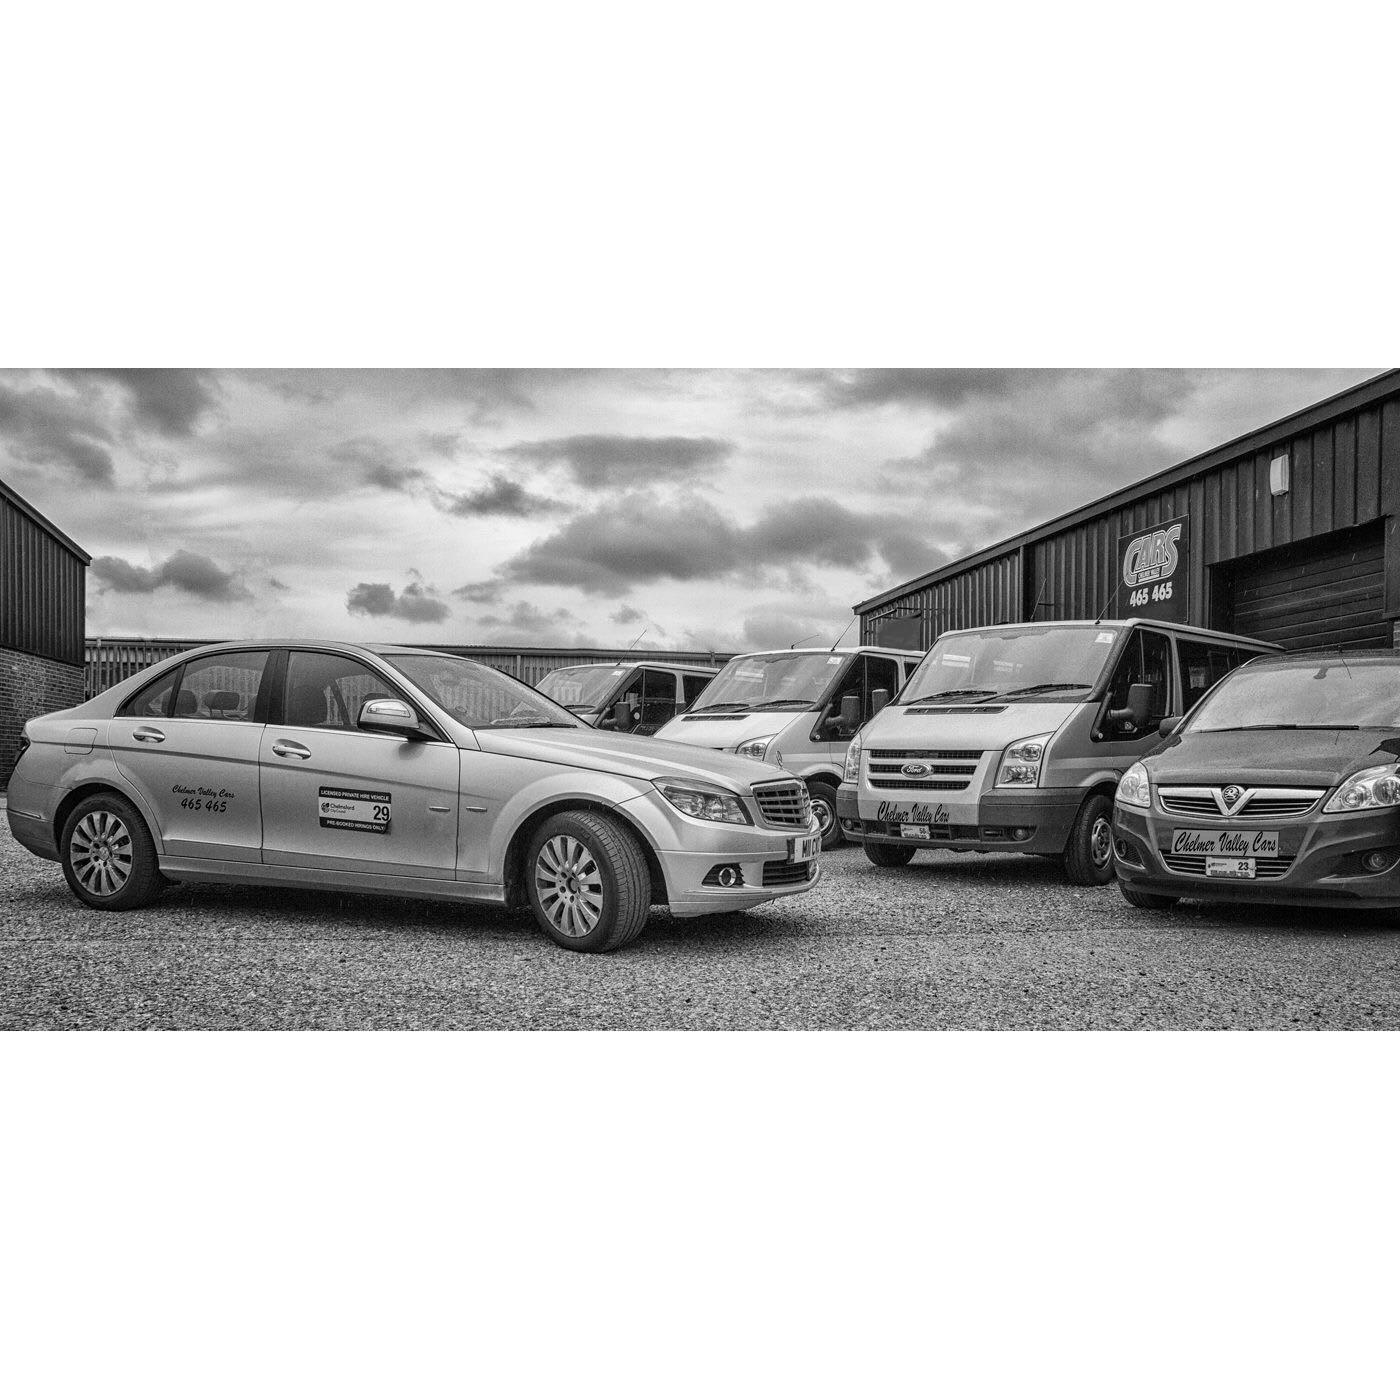 Chelmer Valley Cars Ltd